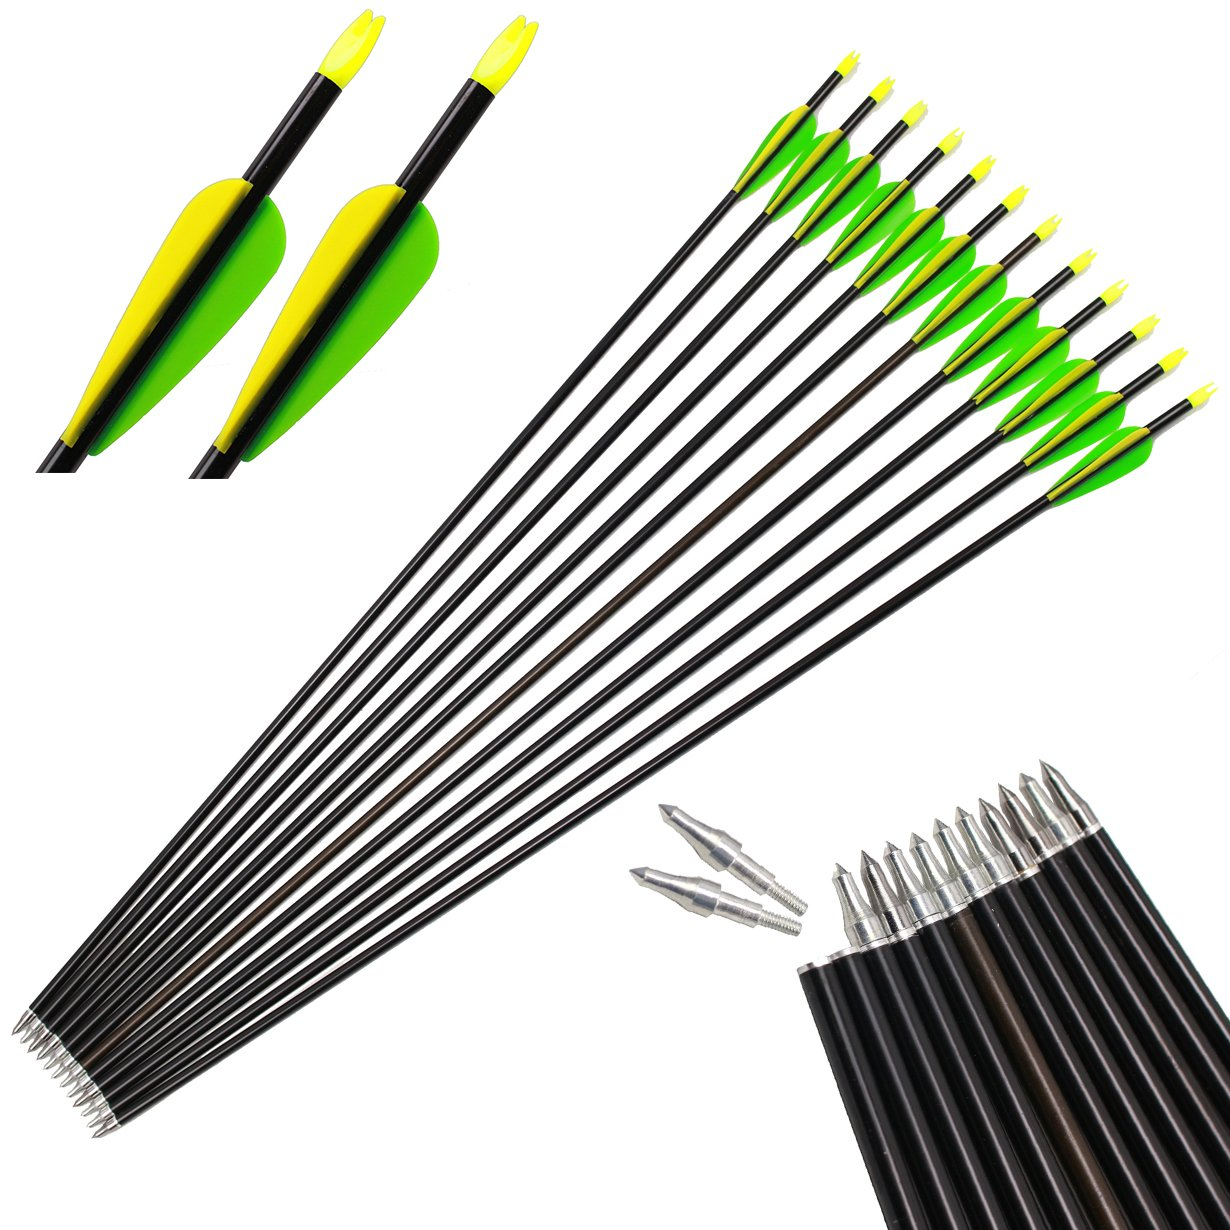 kaimei Archery Aluminum Arrows 3'' Vane Field Points Replaceable Tips for Recurve Targeting or Hunting(Pack of 12) Bow Compound Bow